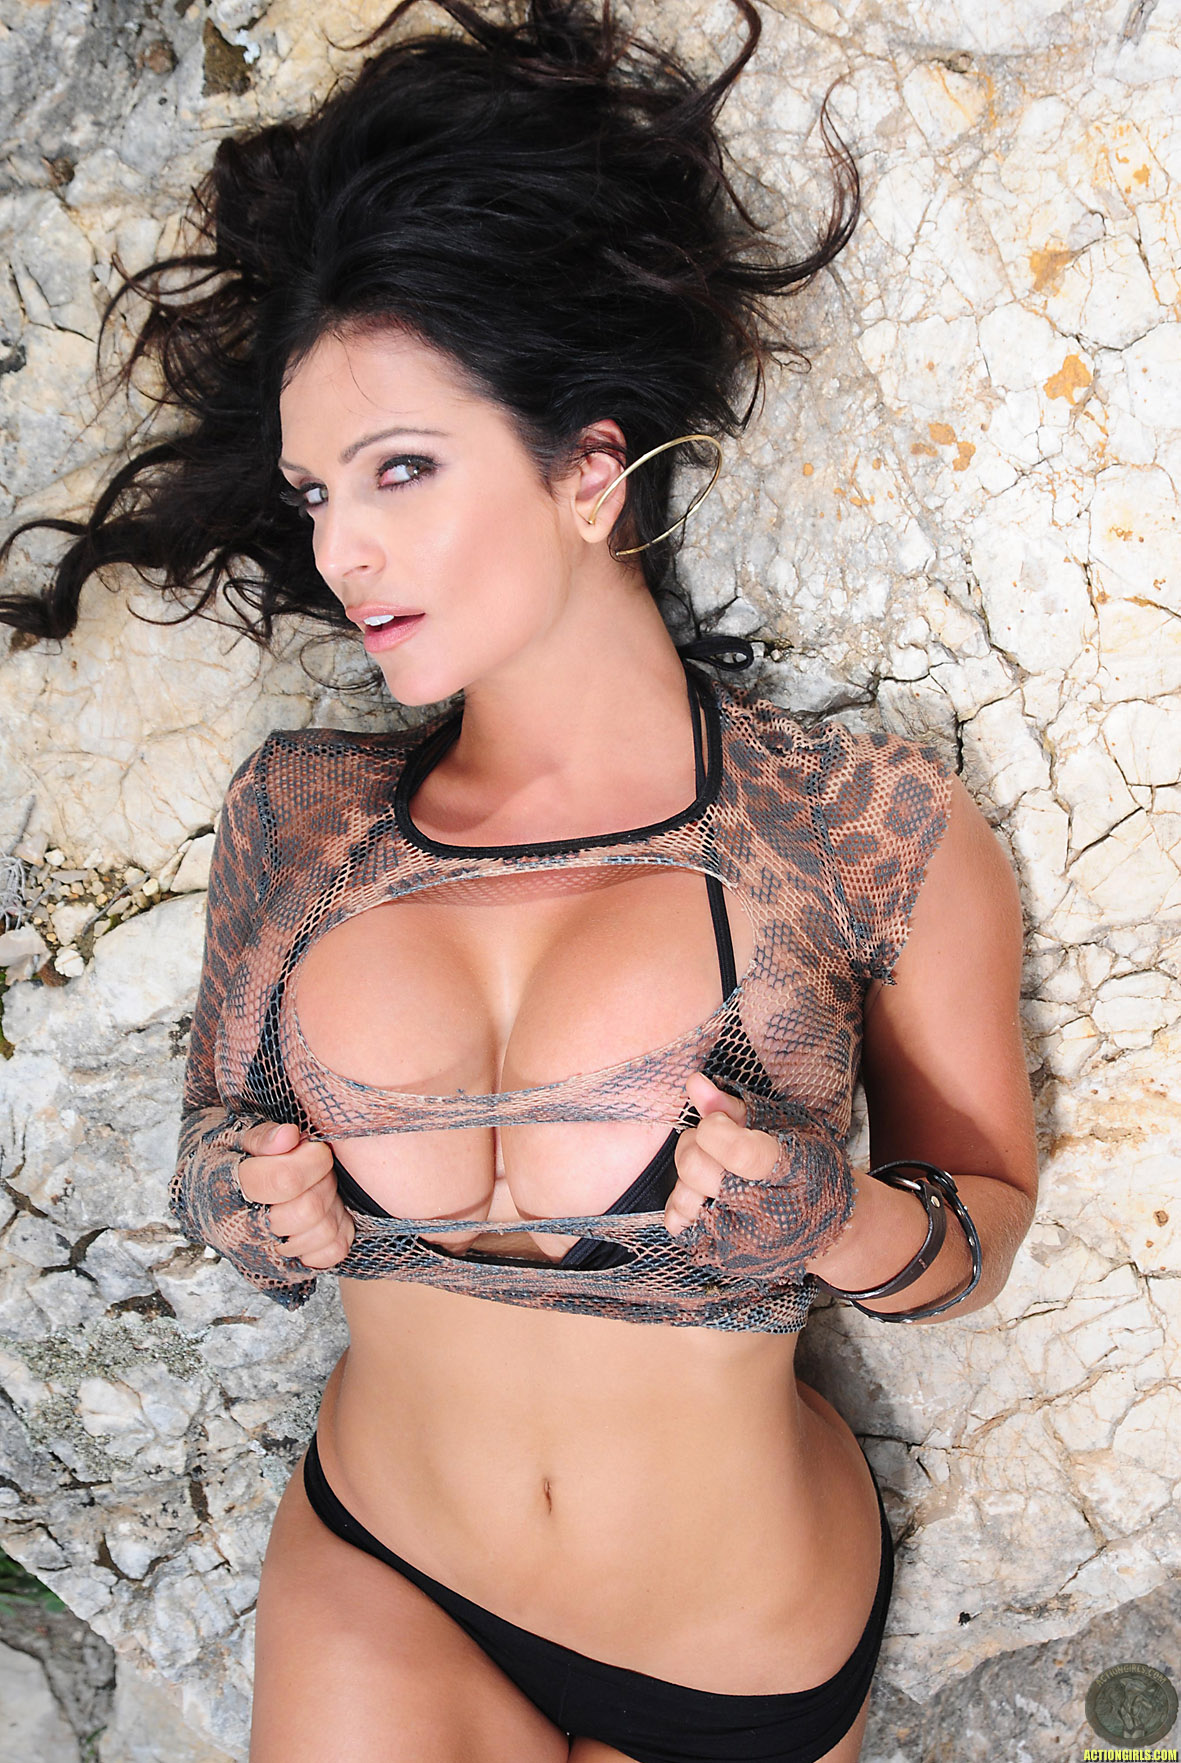 image Denise milani only photos and car non nude